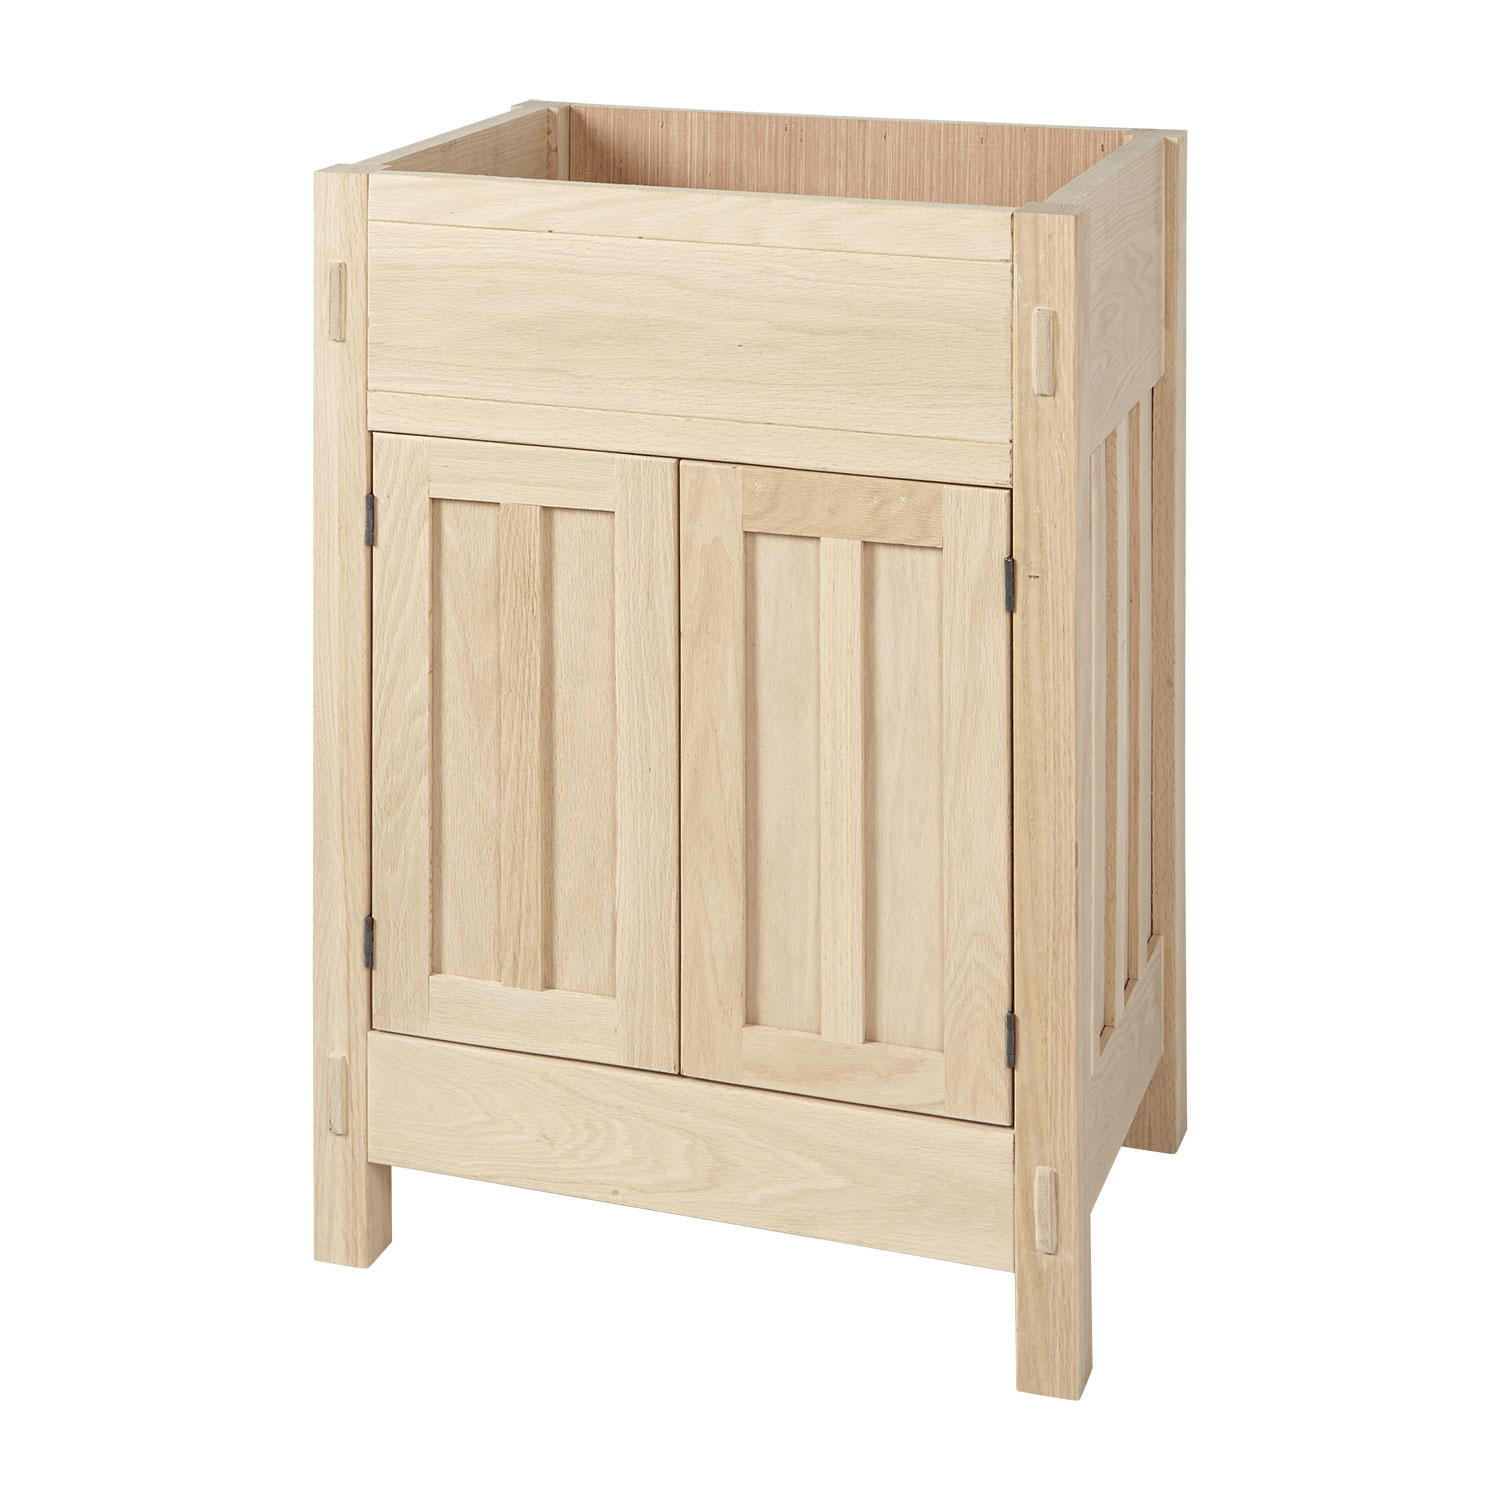 All about bathroom vanity base cabinet unfinished for Unfinished bathroom vanities and cabinets